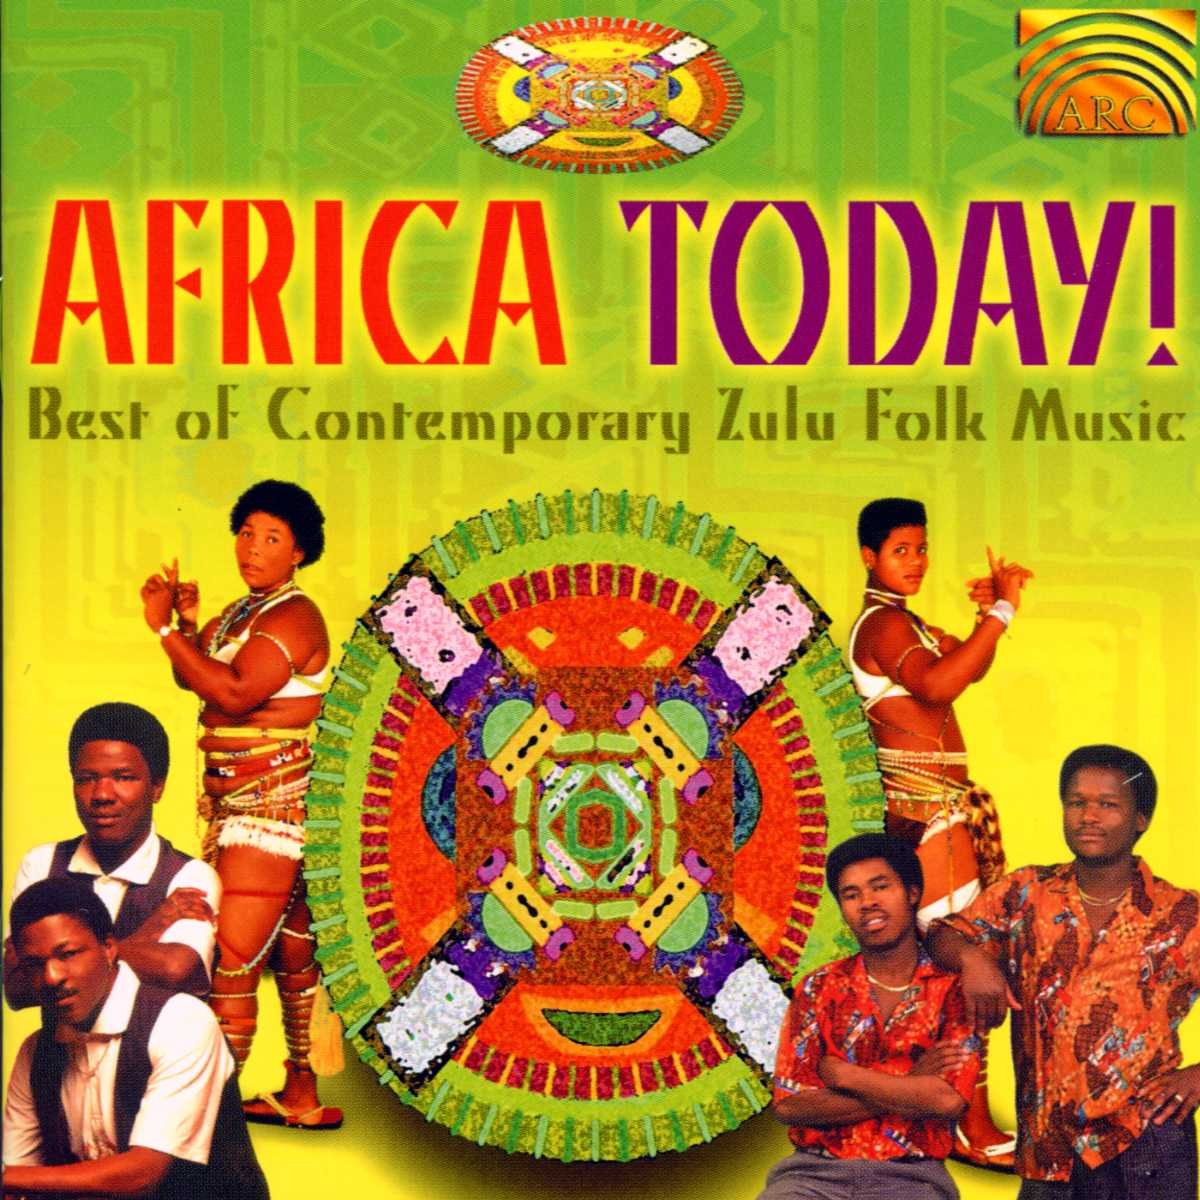 Africa Today! Best of Contemporary Zulu Folk Music